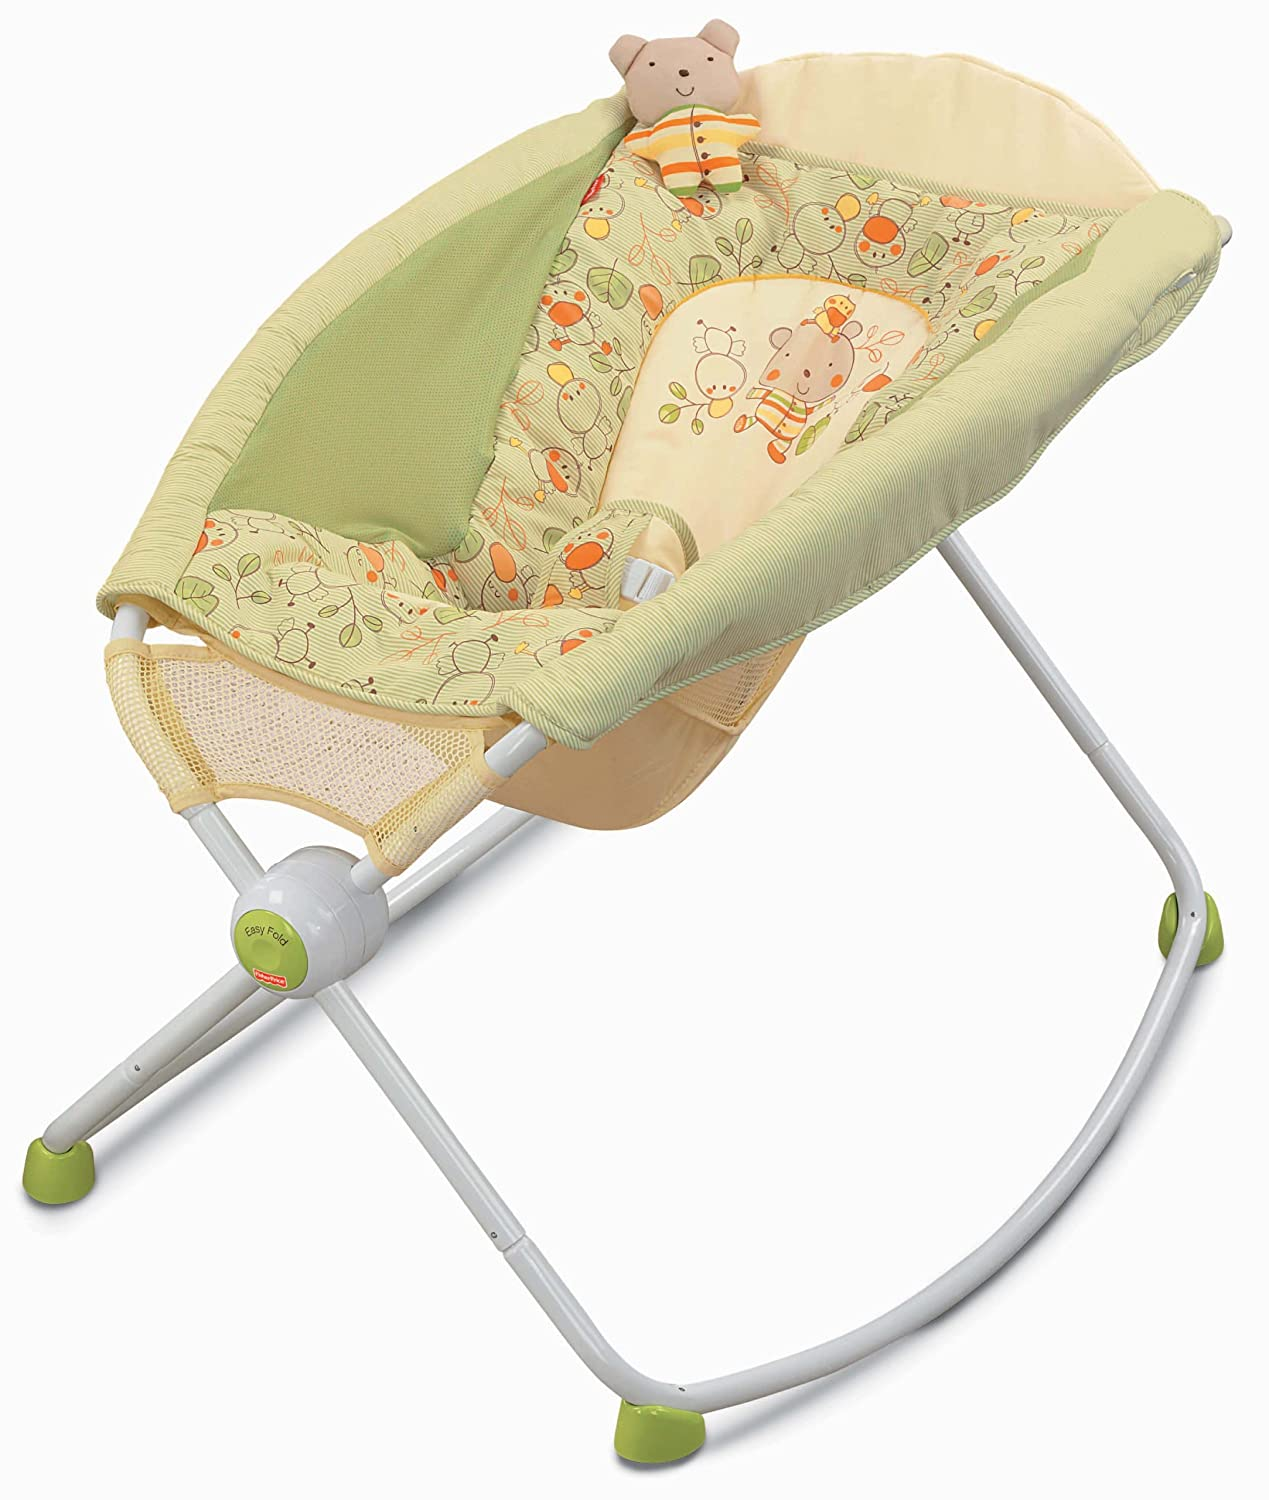 rock baby fisher play price itm comfort bed res safety n and new sleeper auto